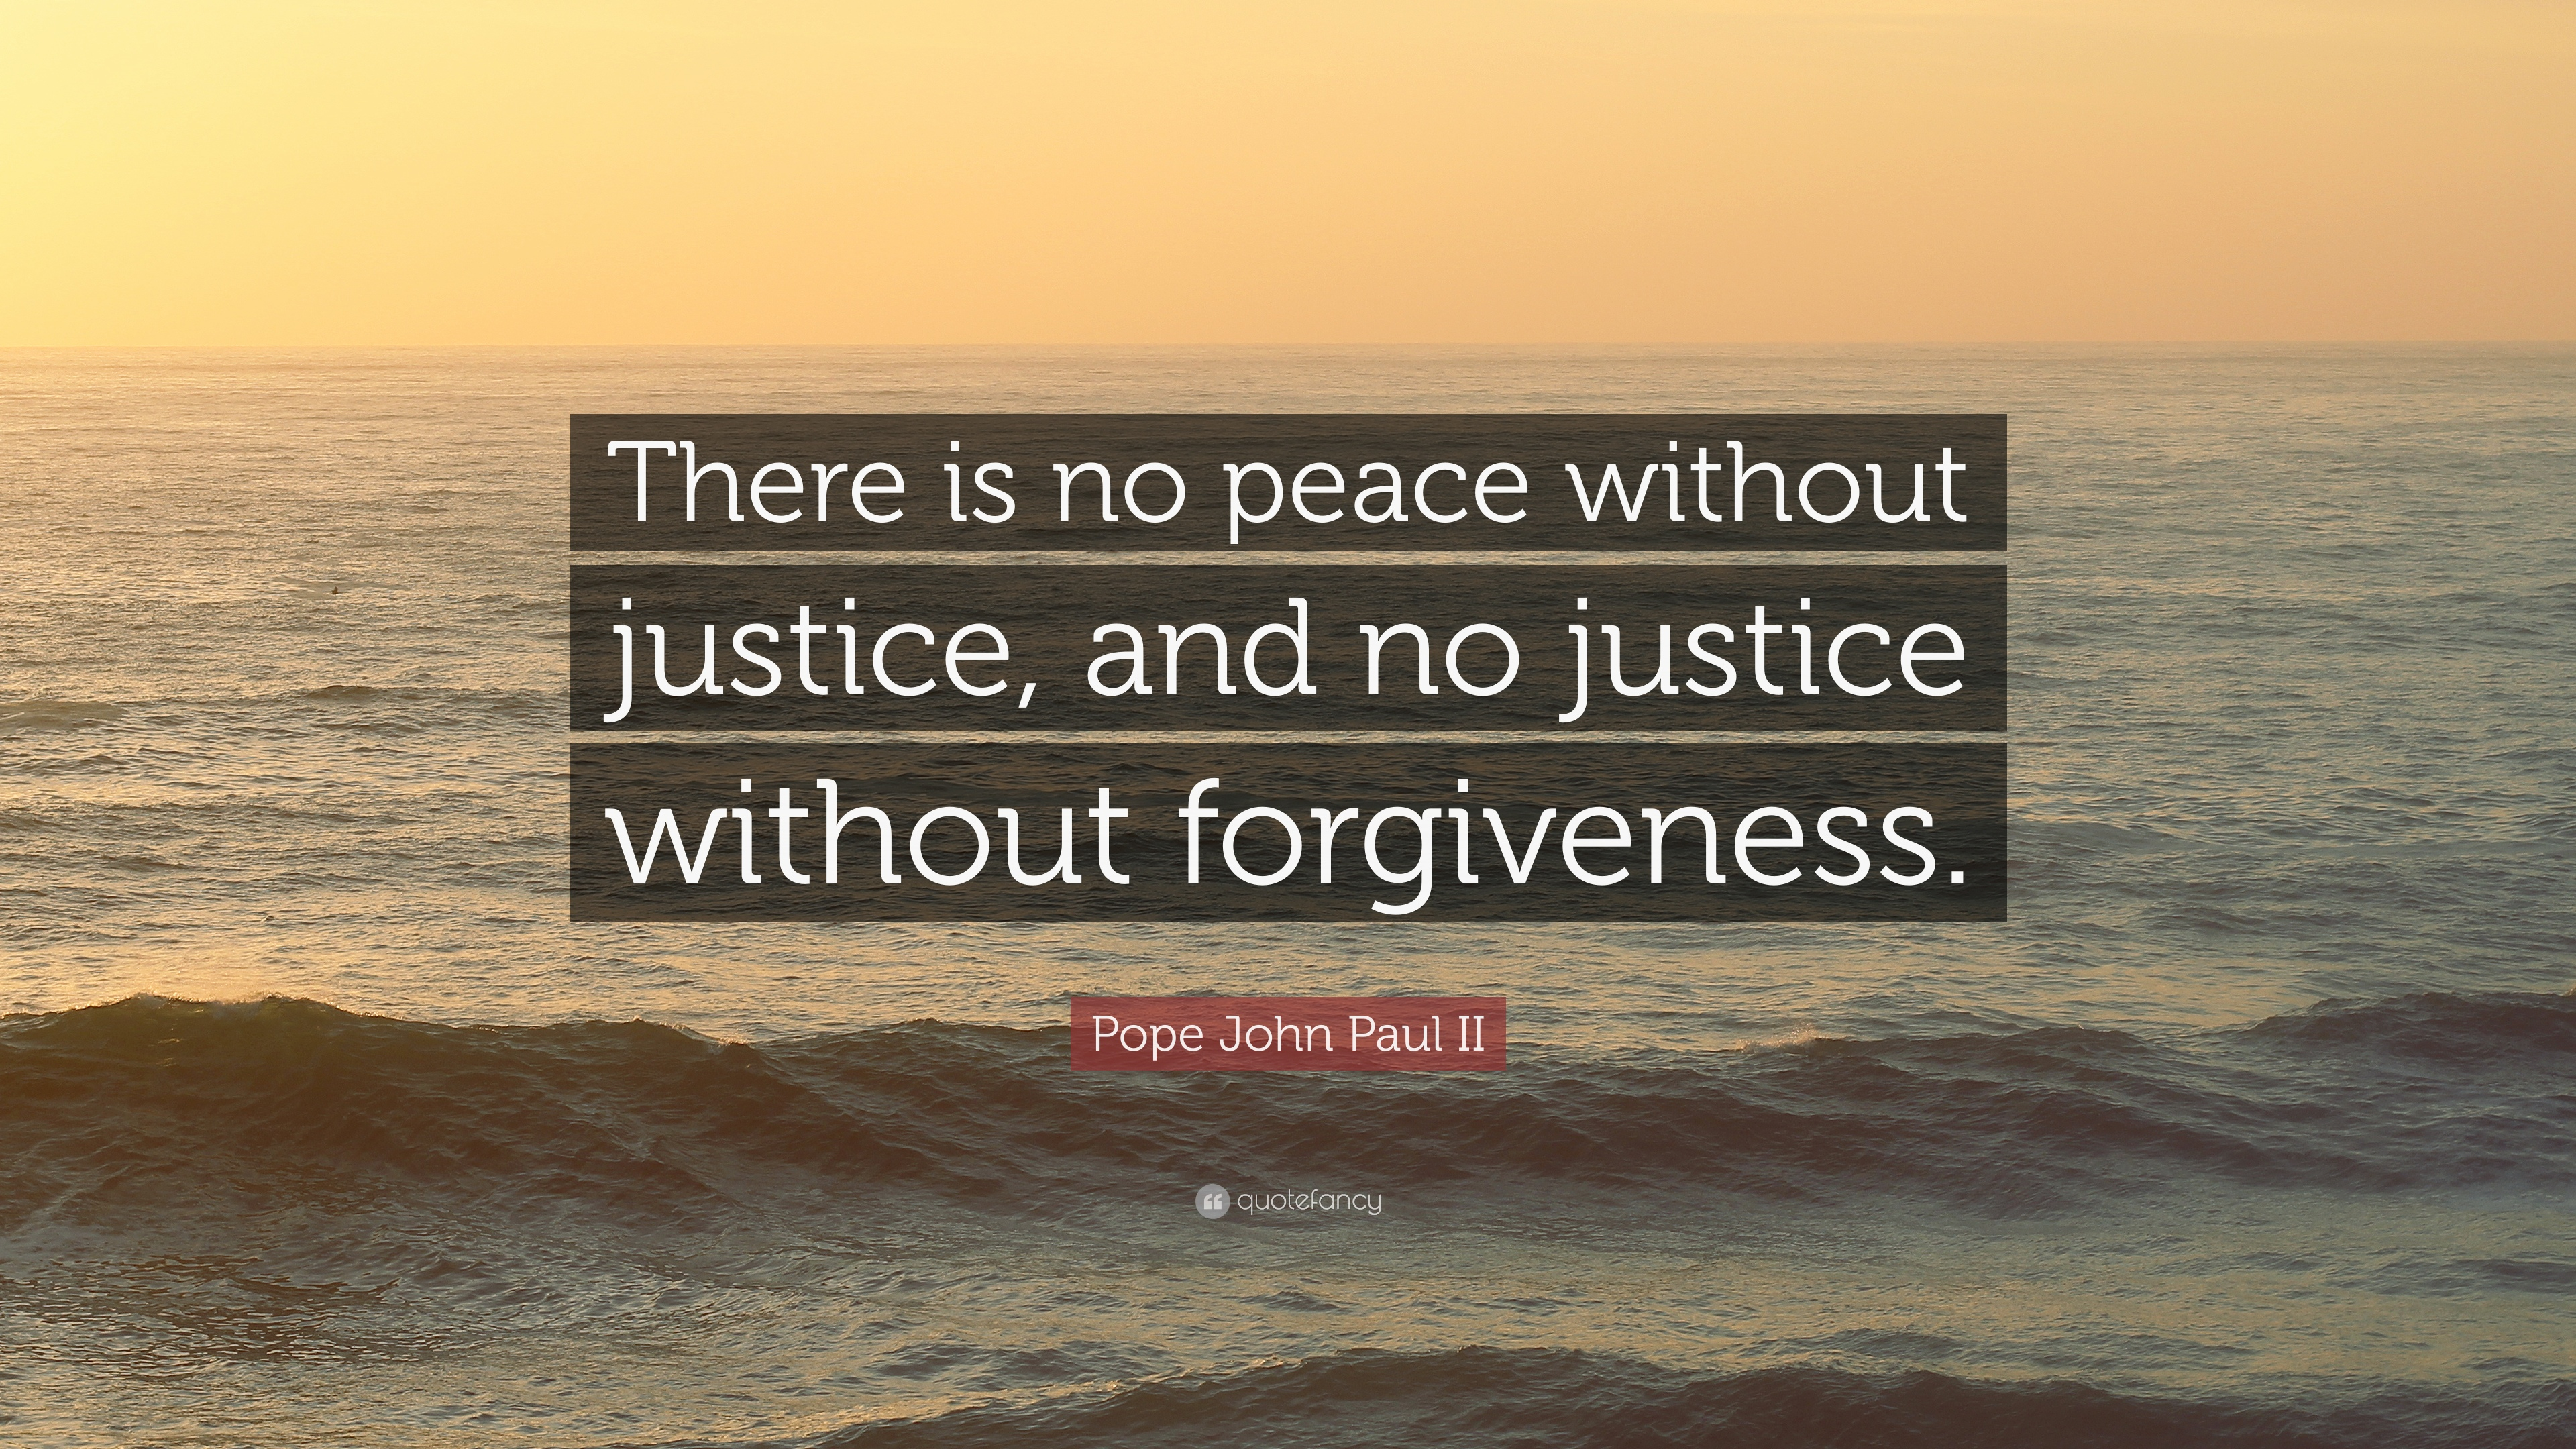 Pope John Paul Ii Quote There Is No Peace Without Justice And No